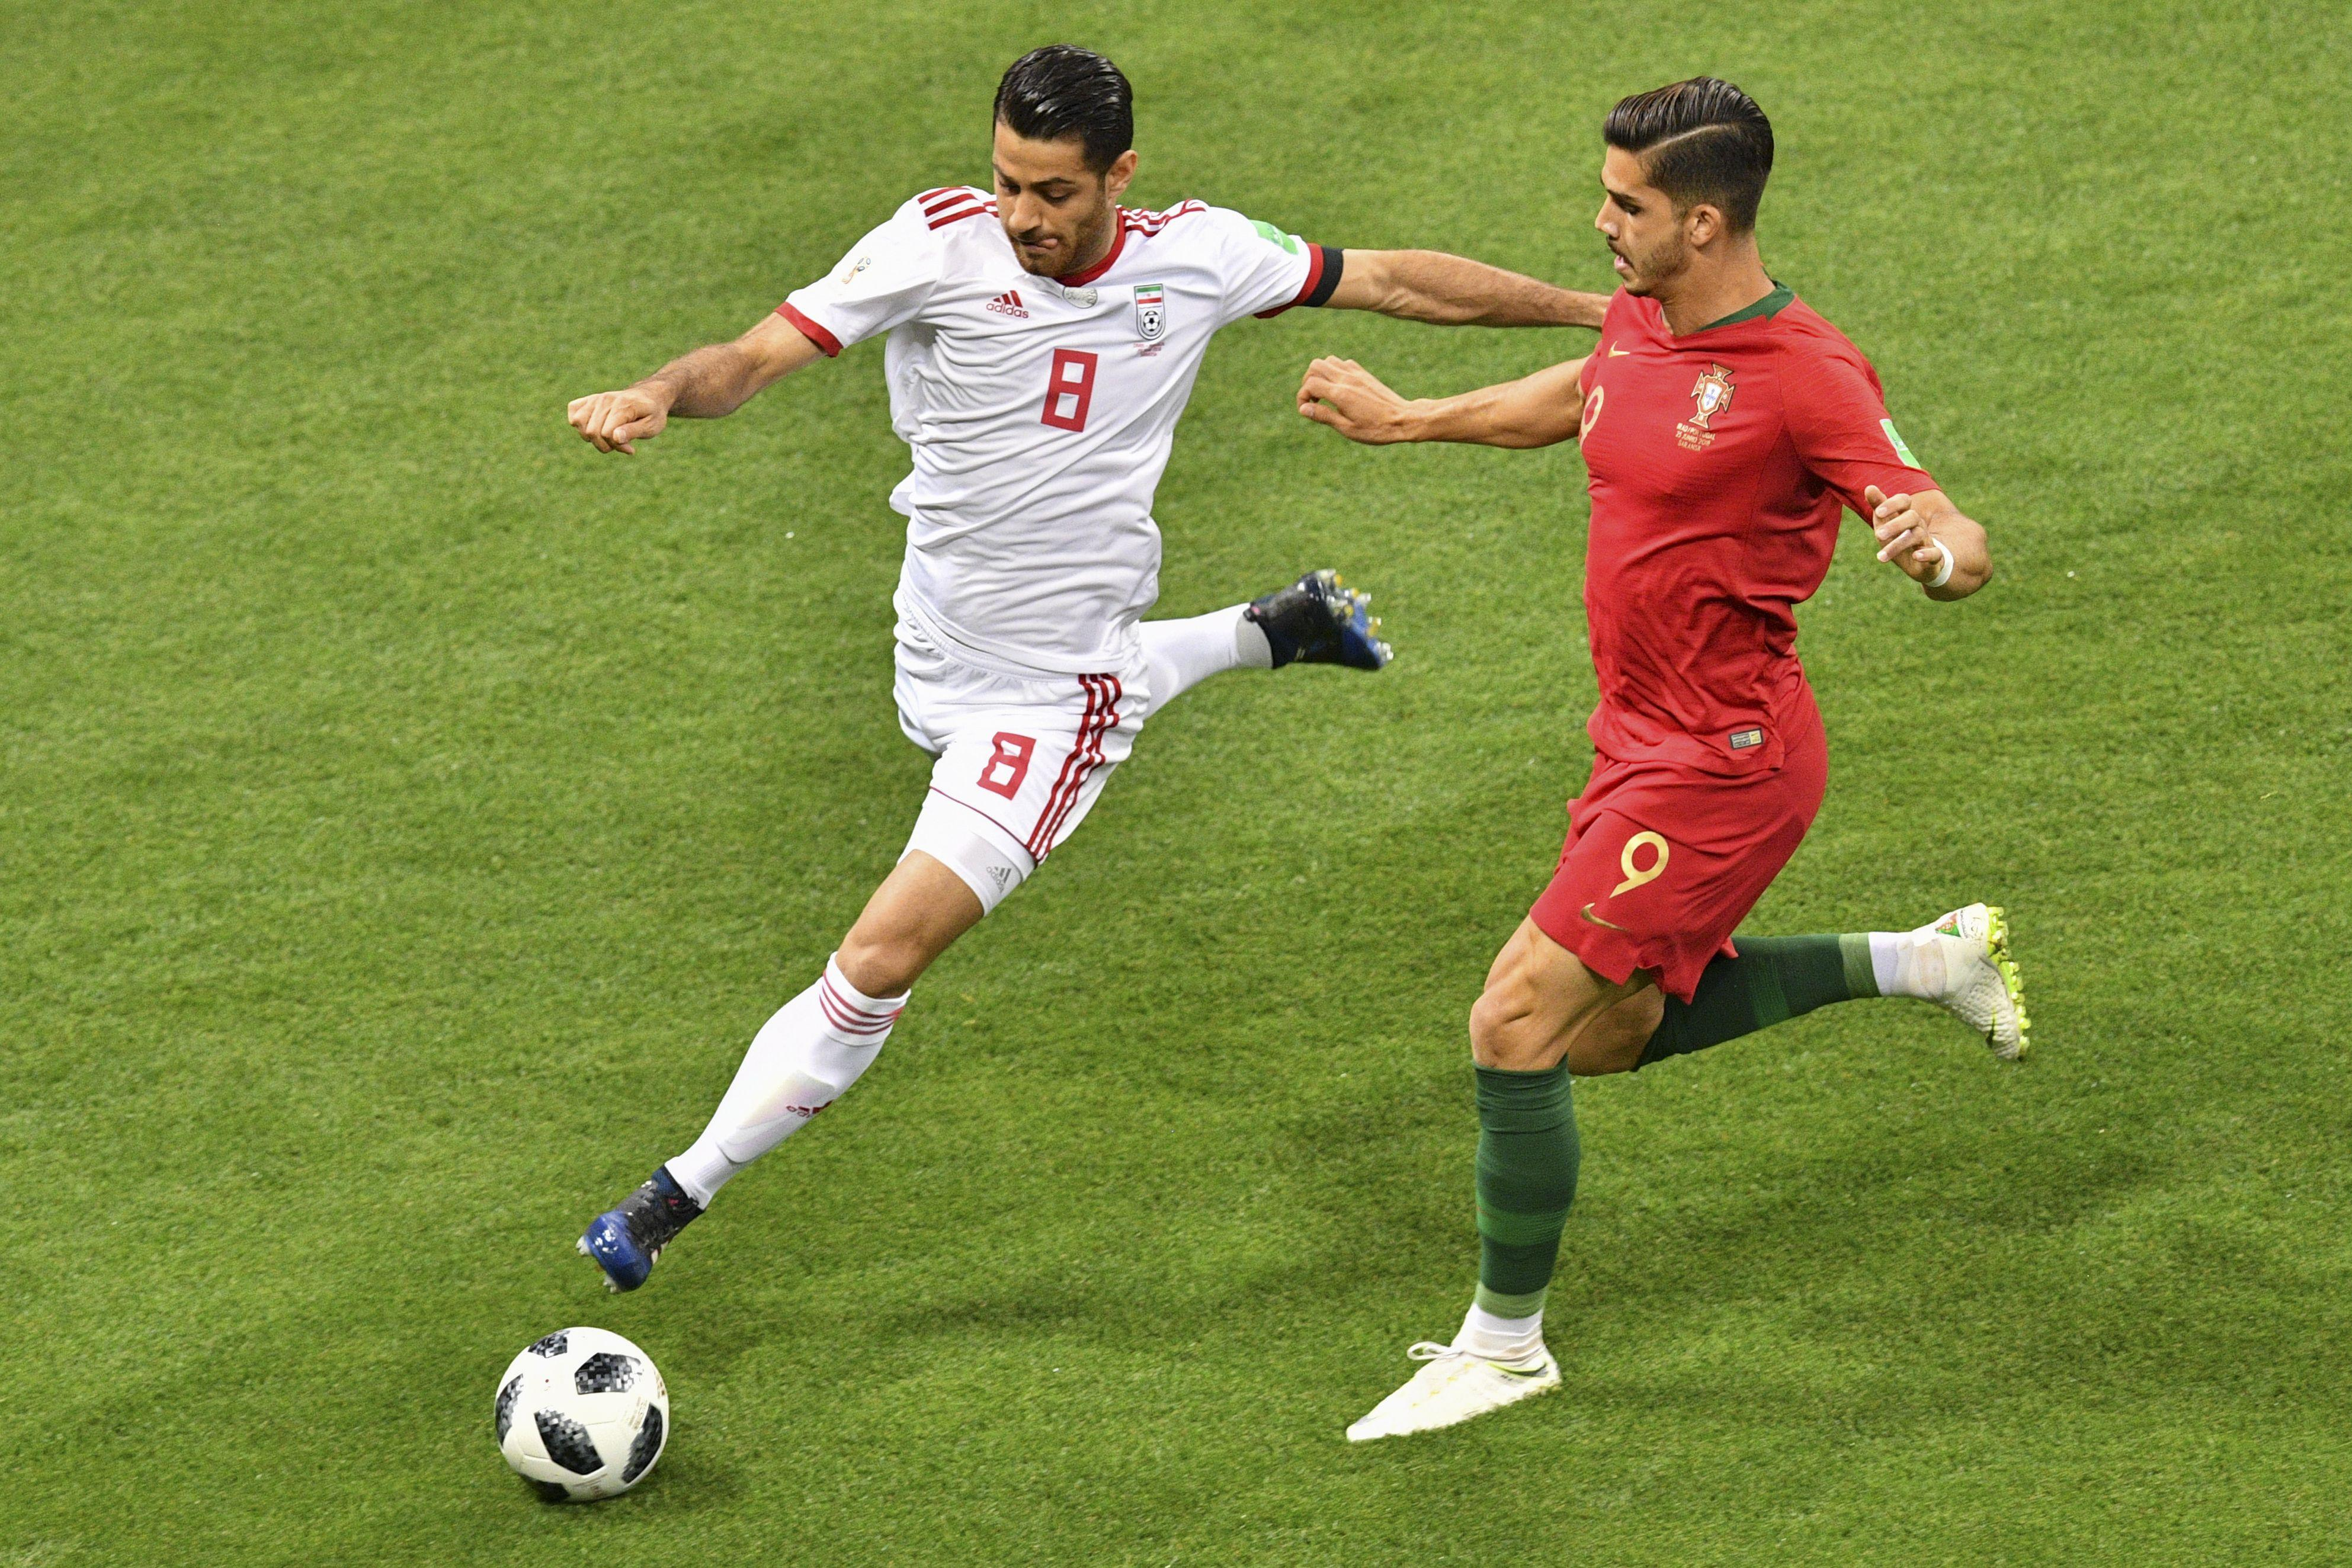 Morteza Pouraliganji played every minute of Iran's World Cup campaign